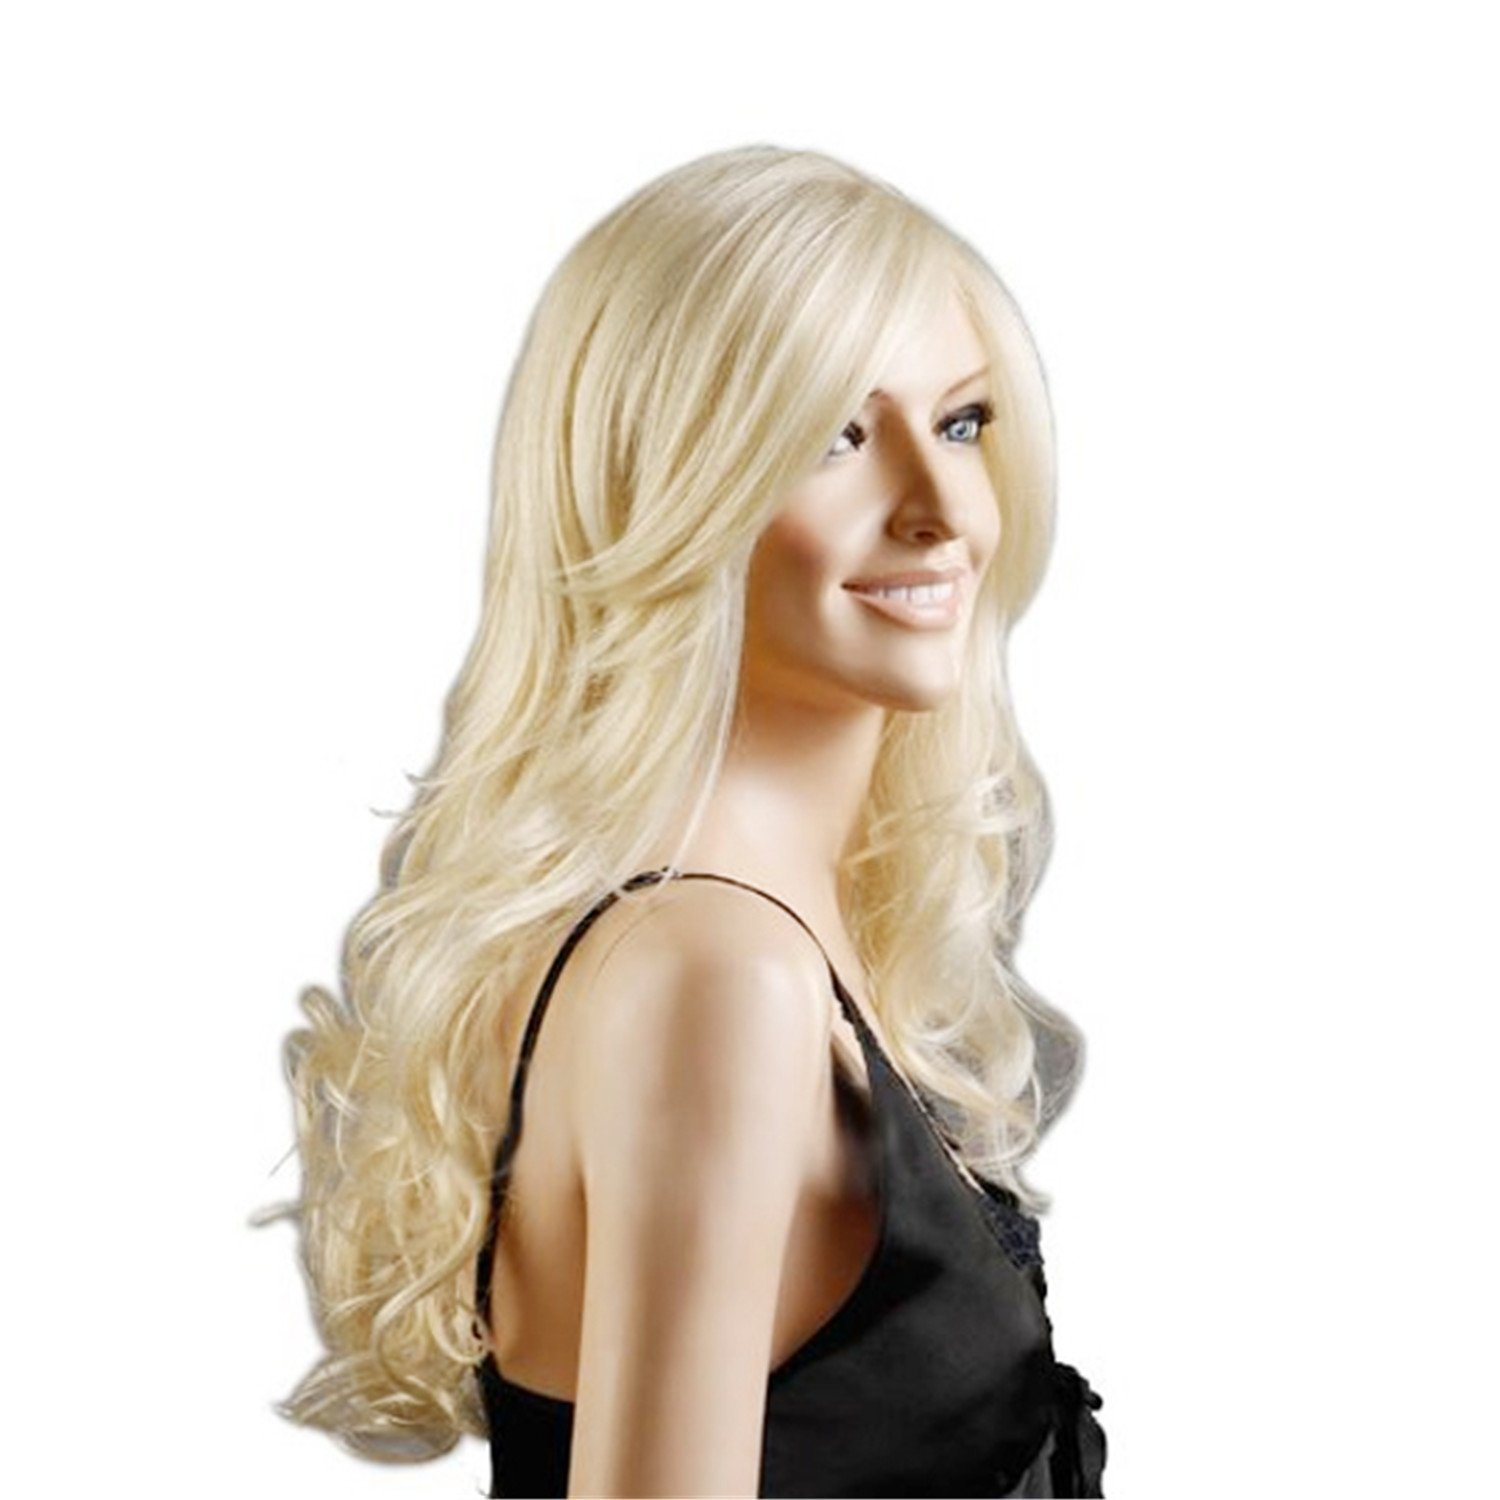 Acecharming Long Blonde Curly Wig,Womens Cosplay Wig Fashion Natural Full Party Wig with Free Wig Cap